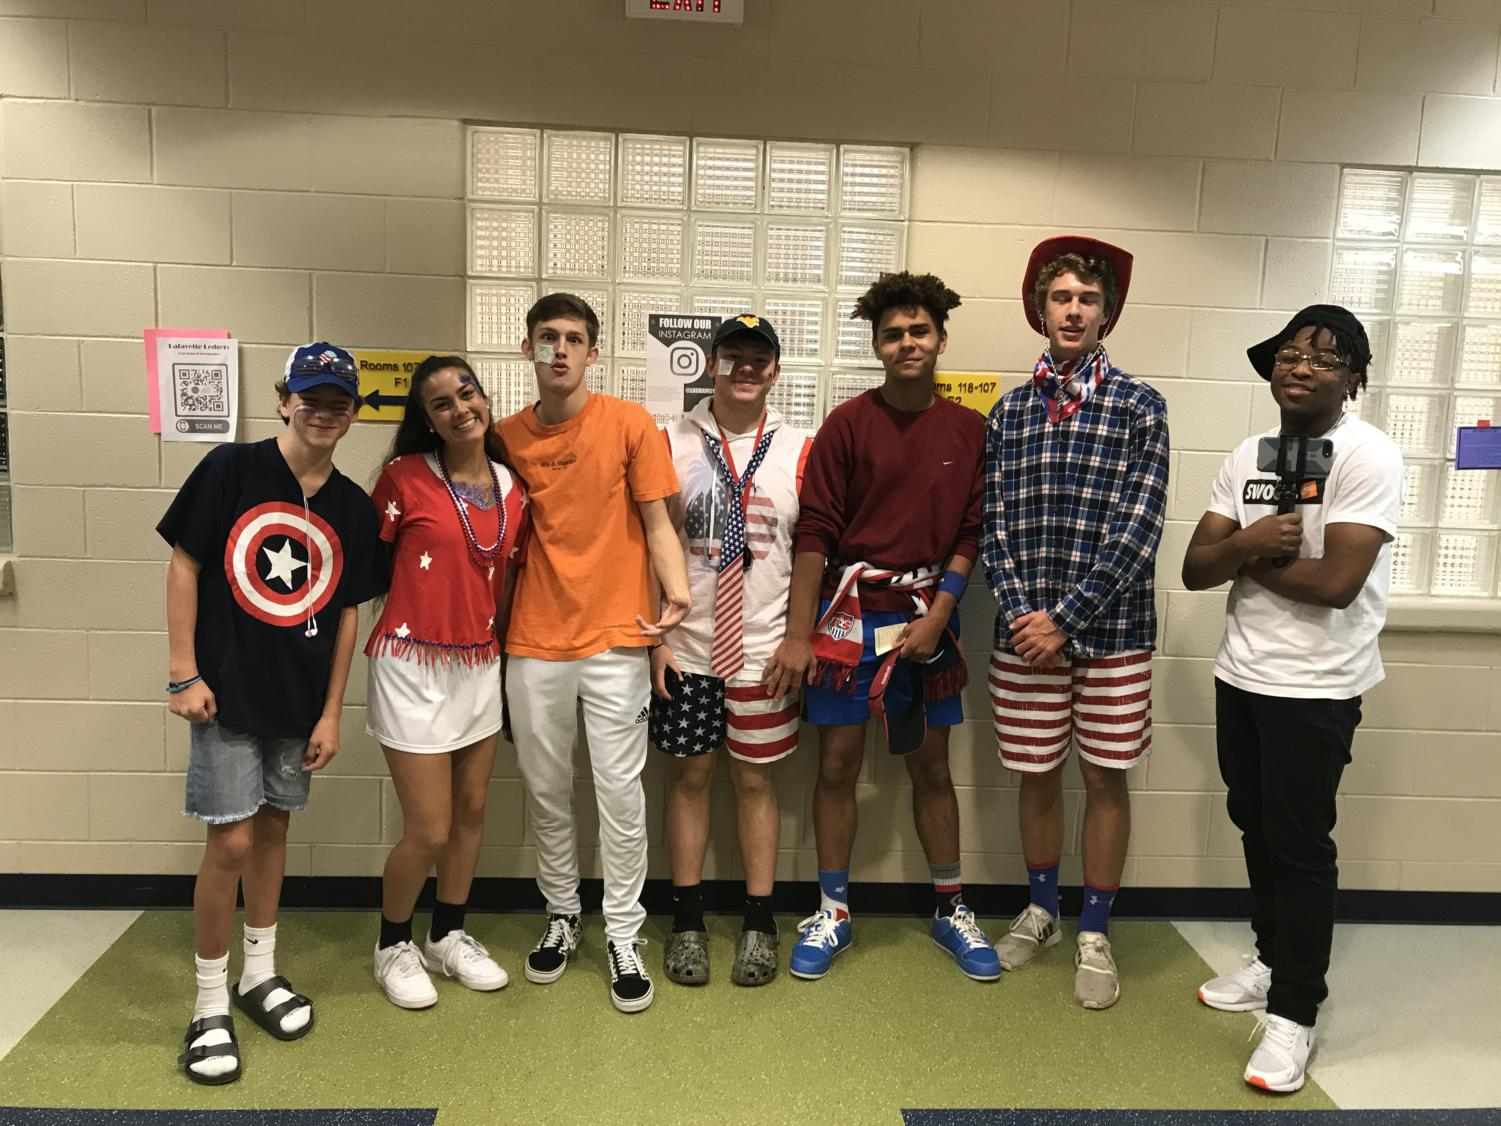 Movie/America Monday spirited students are excited for all the fun Spirit Week brings to the halls of Lafayette.